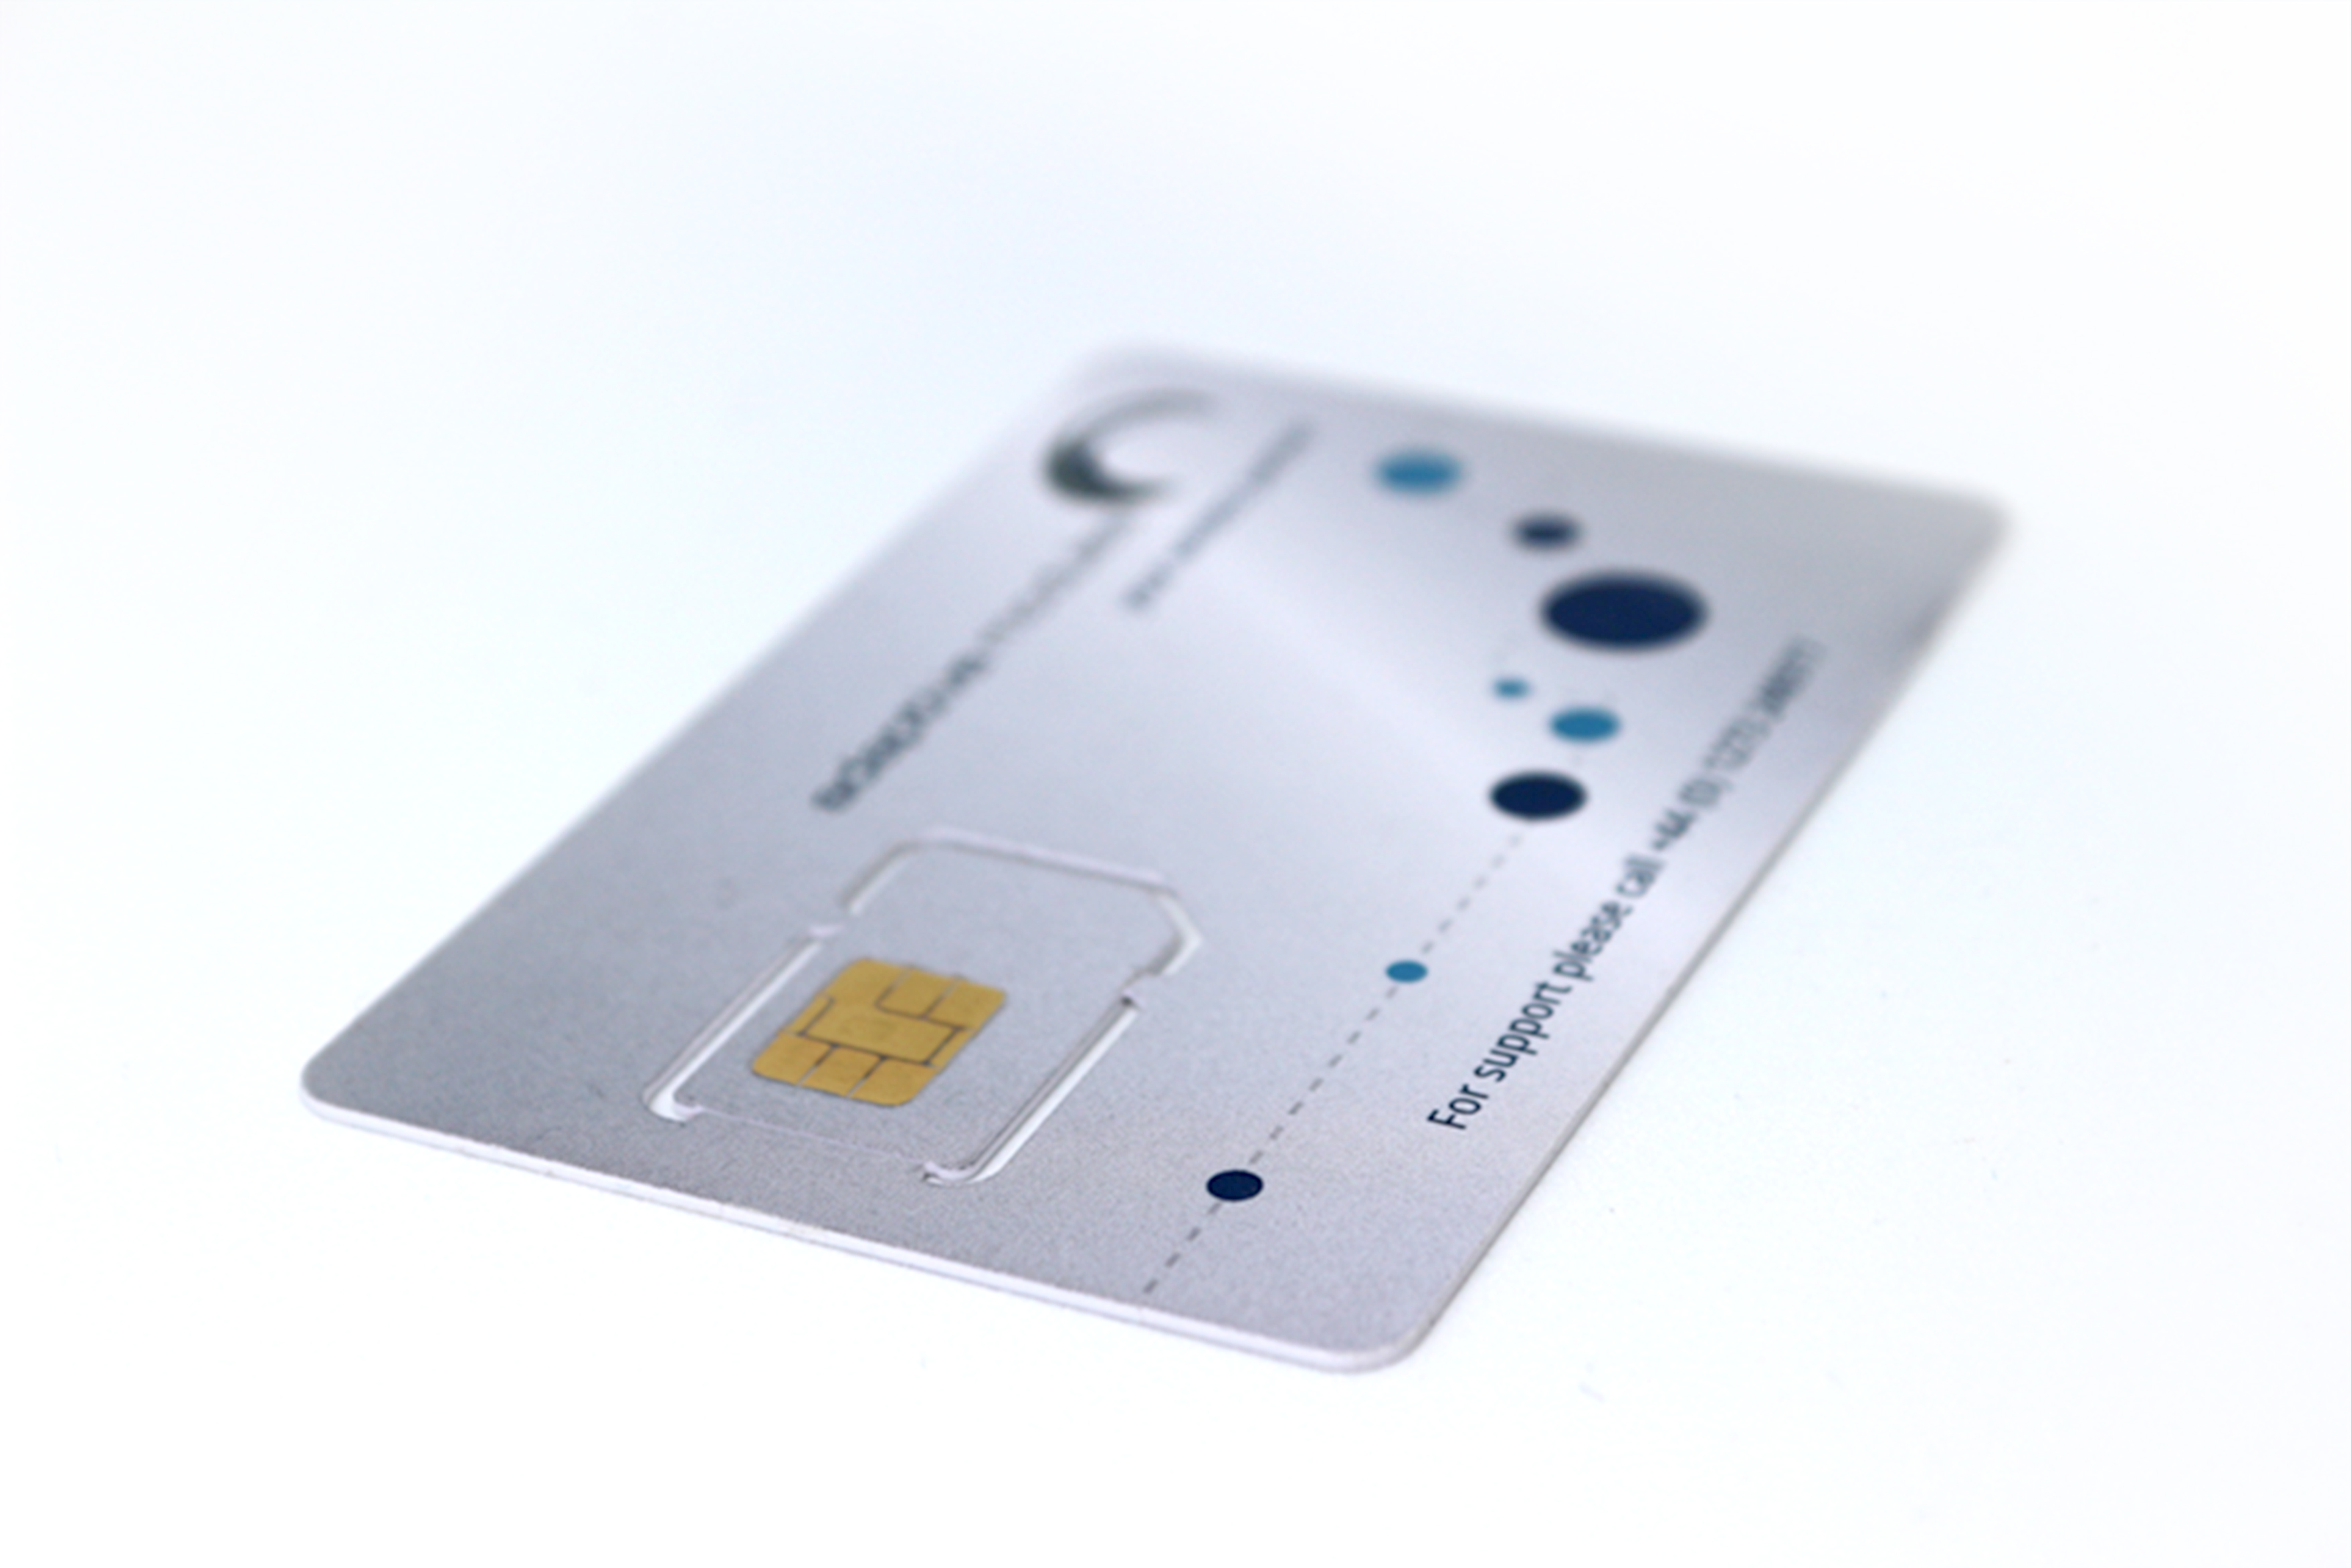 sim card on white